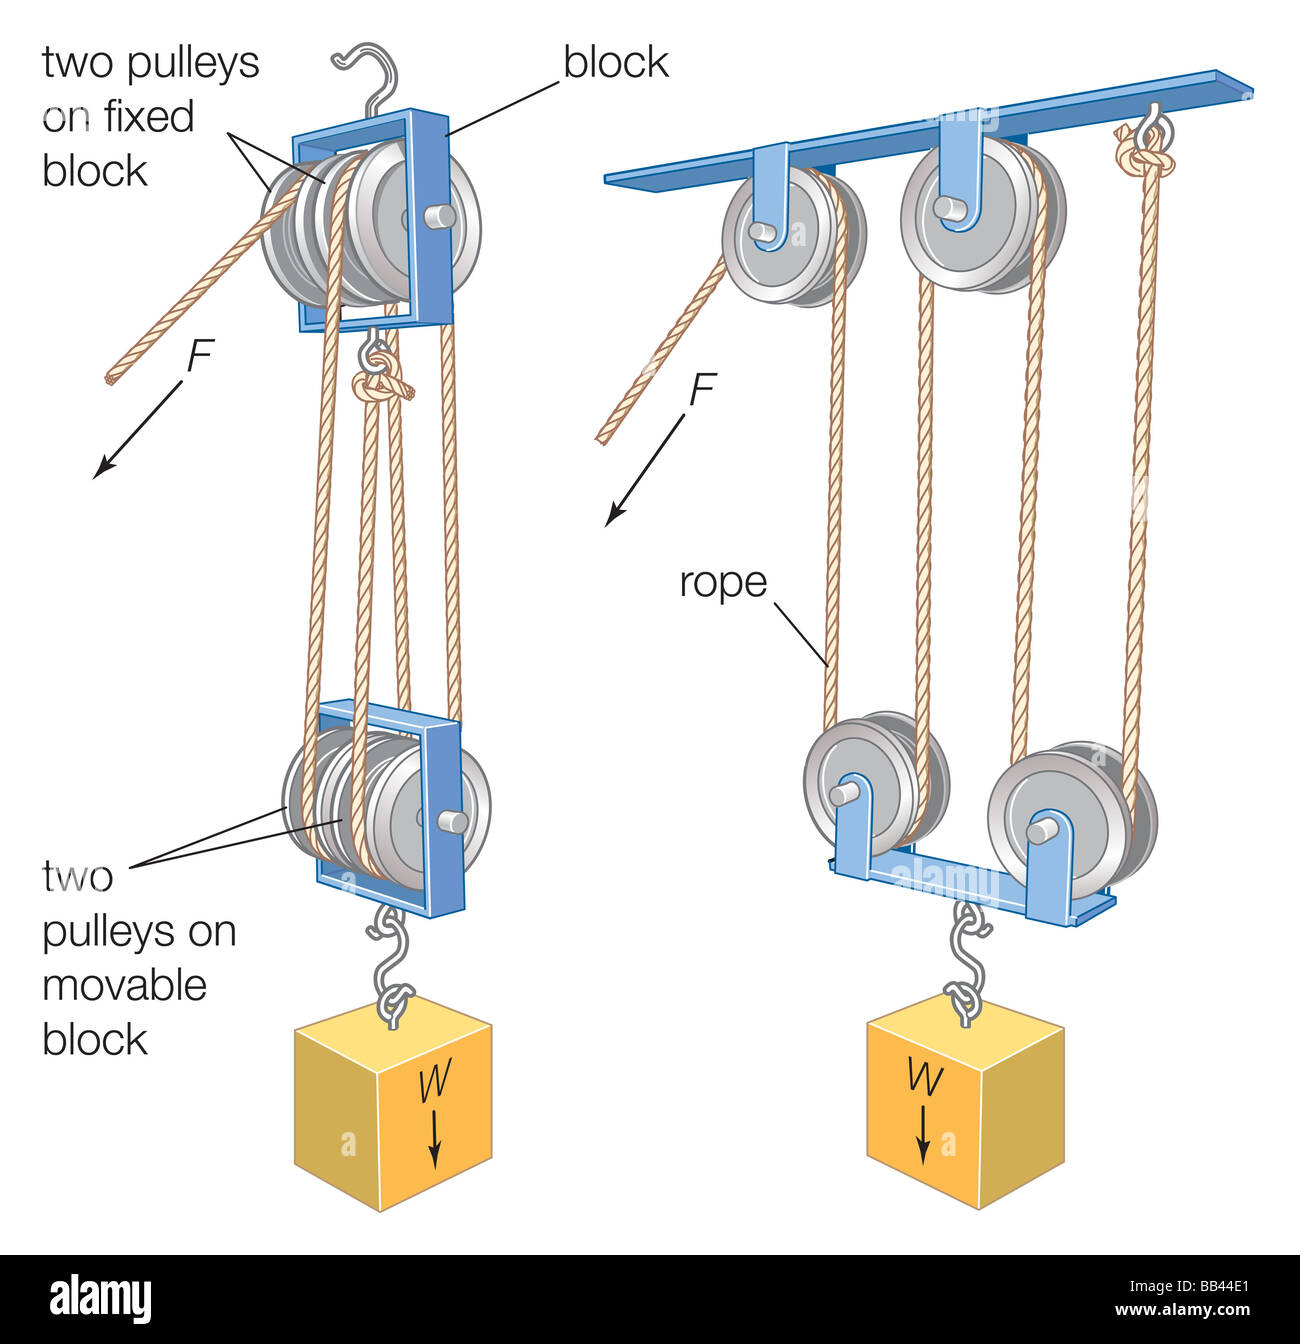 Examples Of Block And Tackle Pulleys : A block and tackle combination of rope or cable